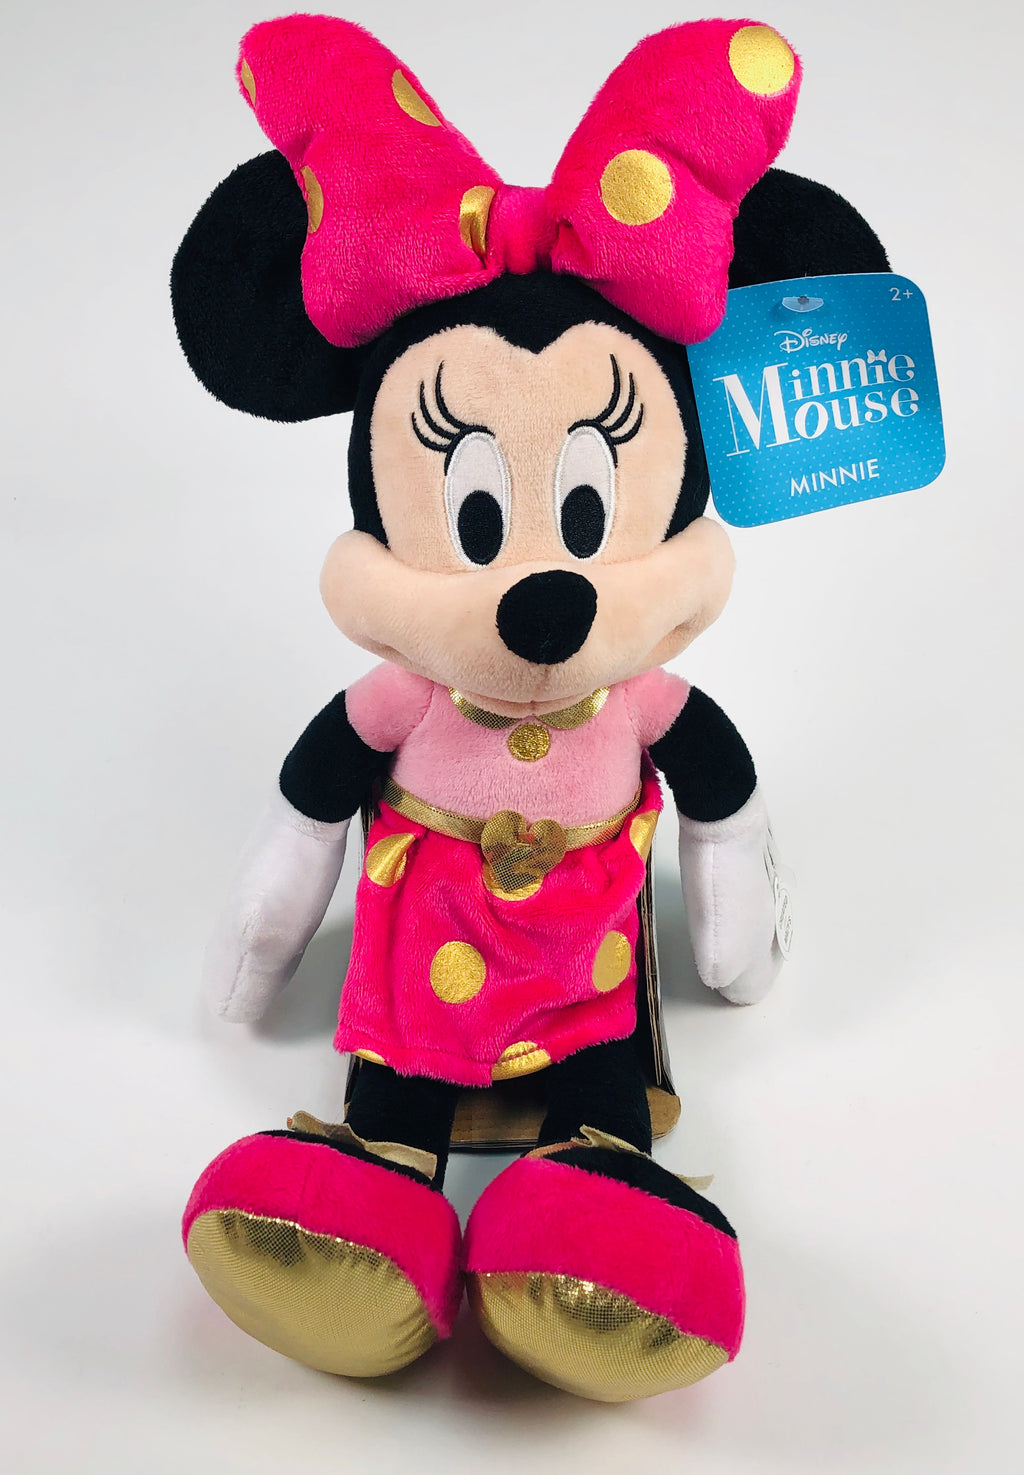 Disney Minnie Mouse Just Play Macys Exclusive Plush Doll Toy